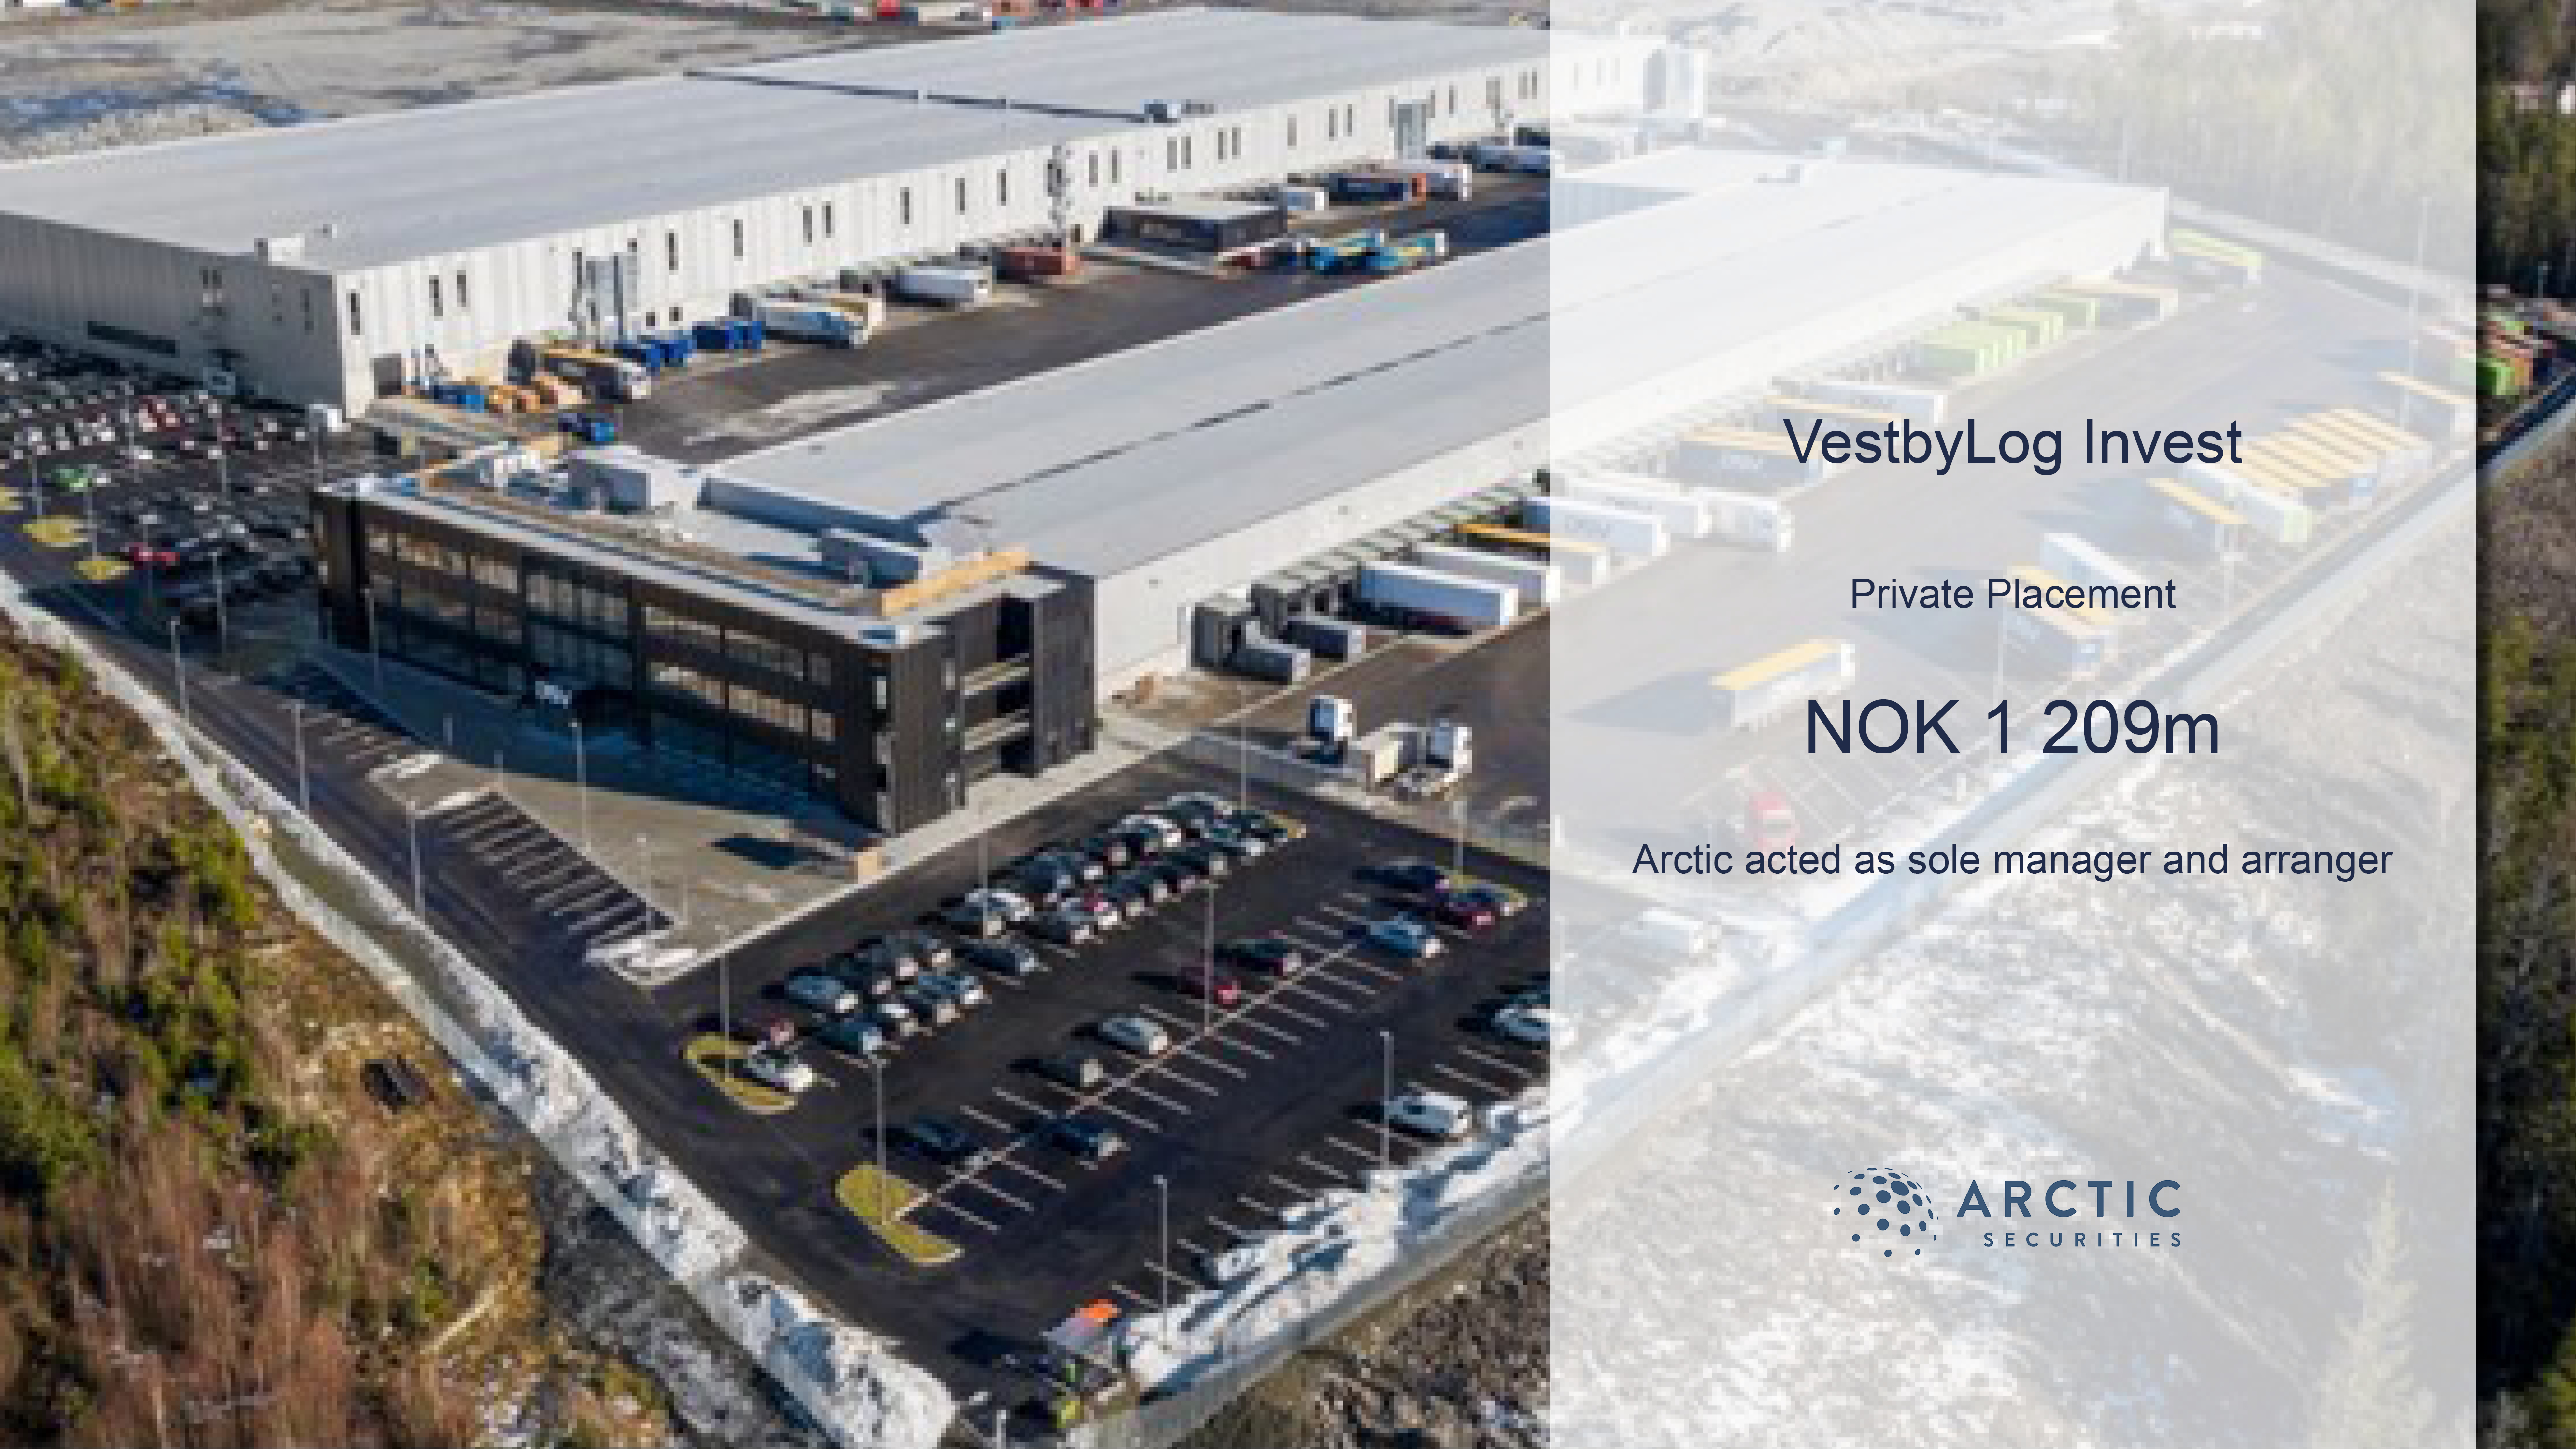 VestbyLog Invest AS - private placement - NOK 1 209m